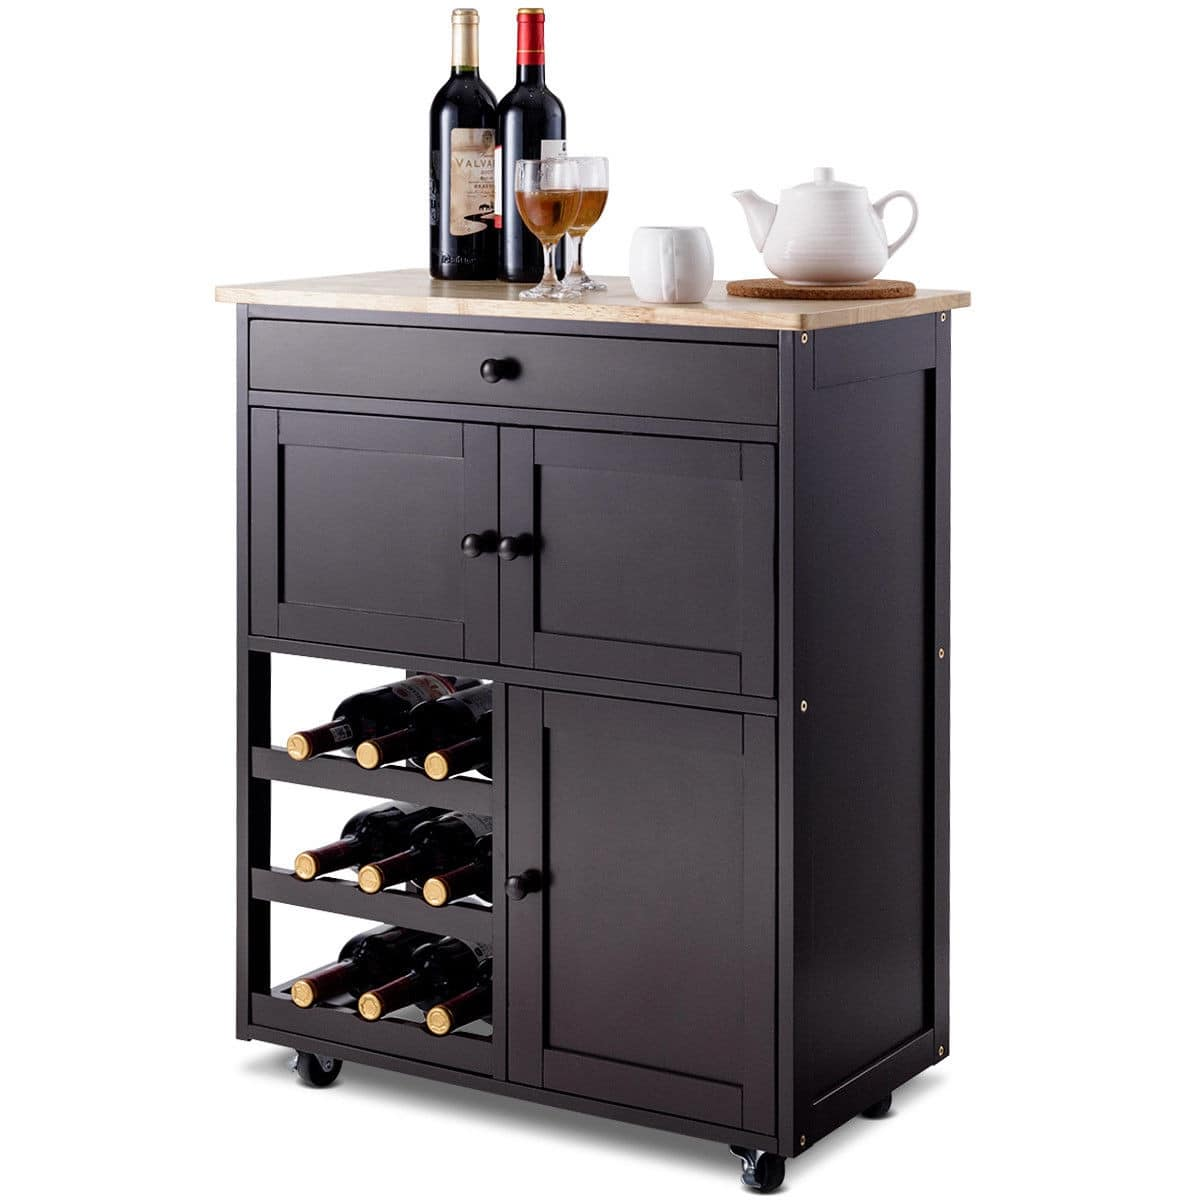 Costway Modern Rolling Storage Kitchen Cart with Drawer - $84.95 + Free Shipping